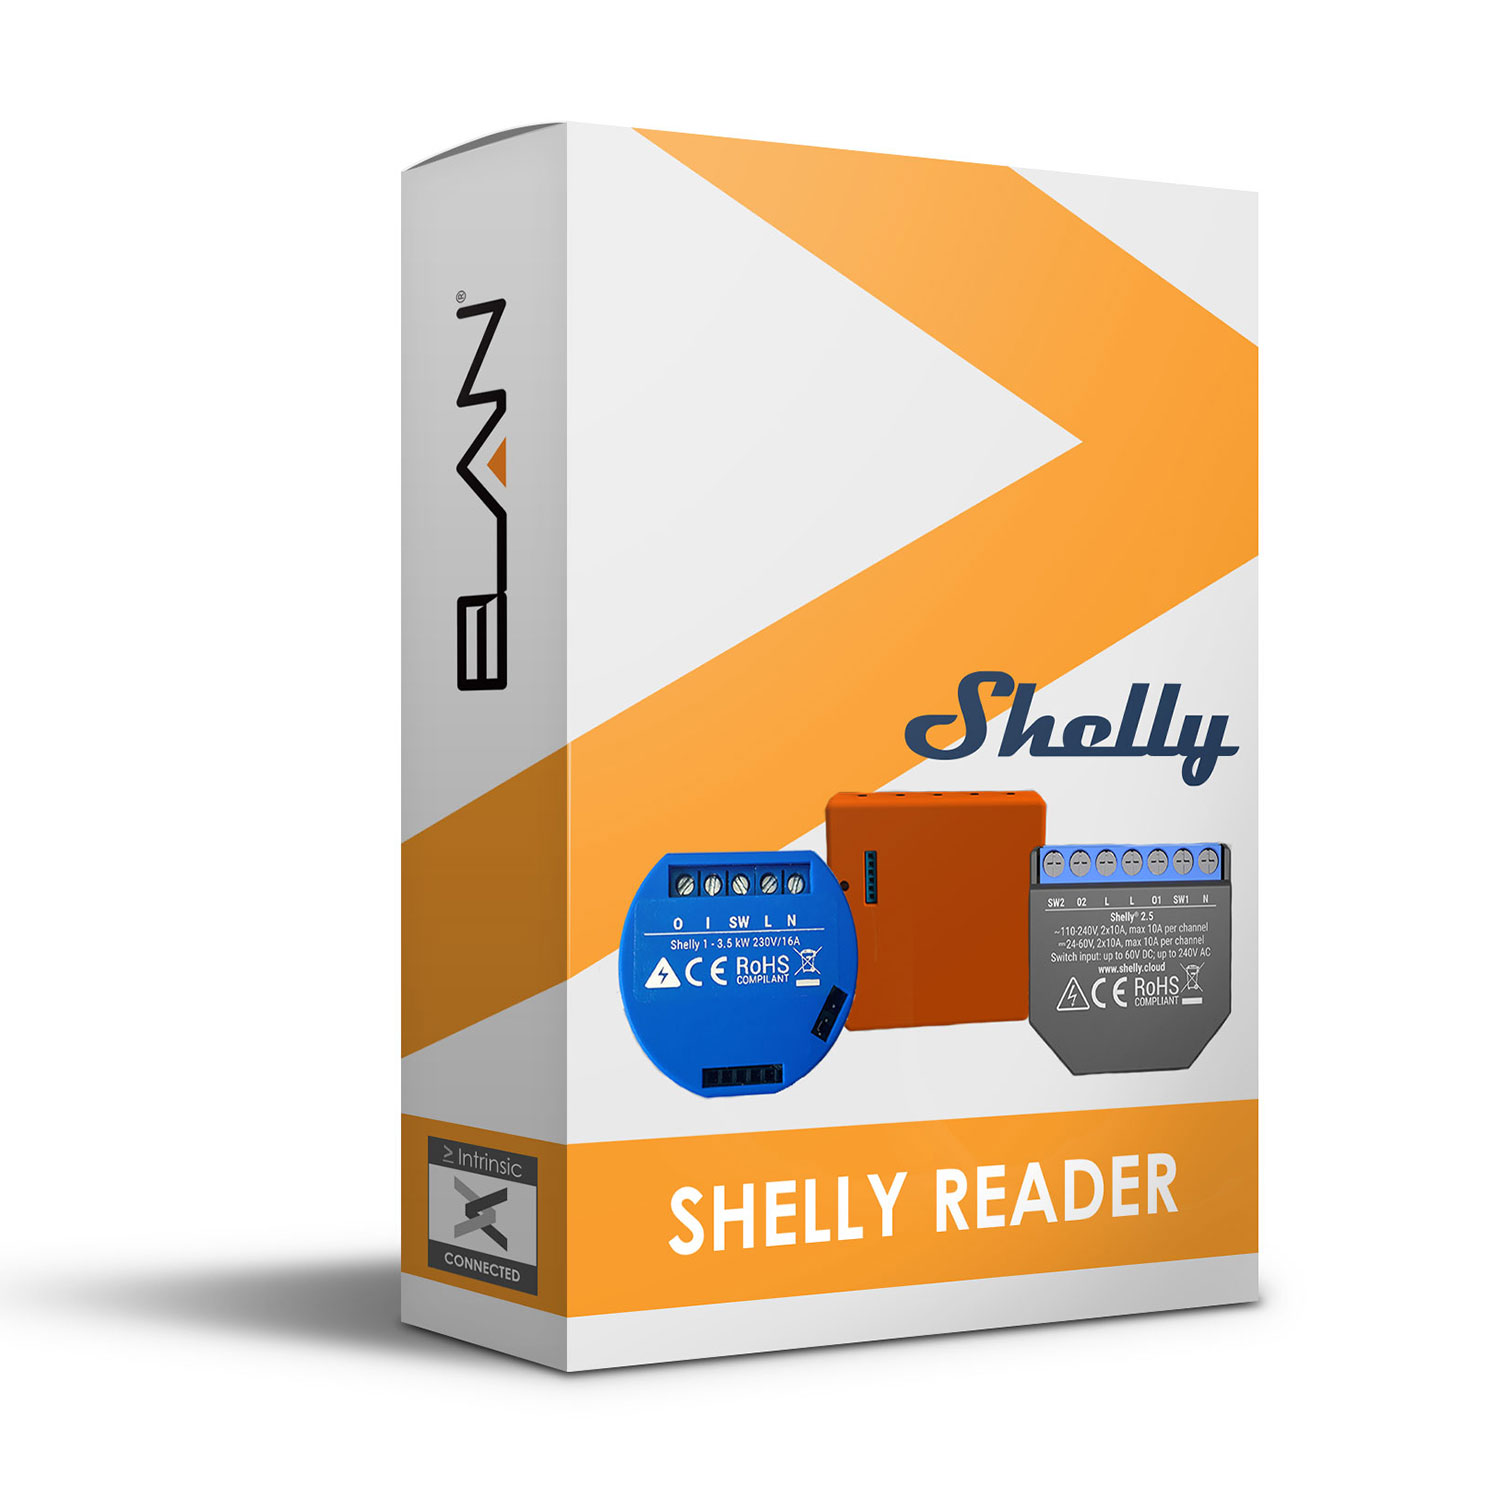 Shelly Reader Driver for ELAN